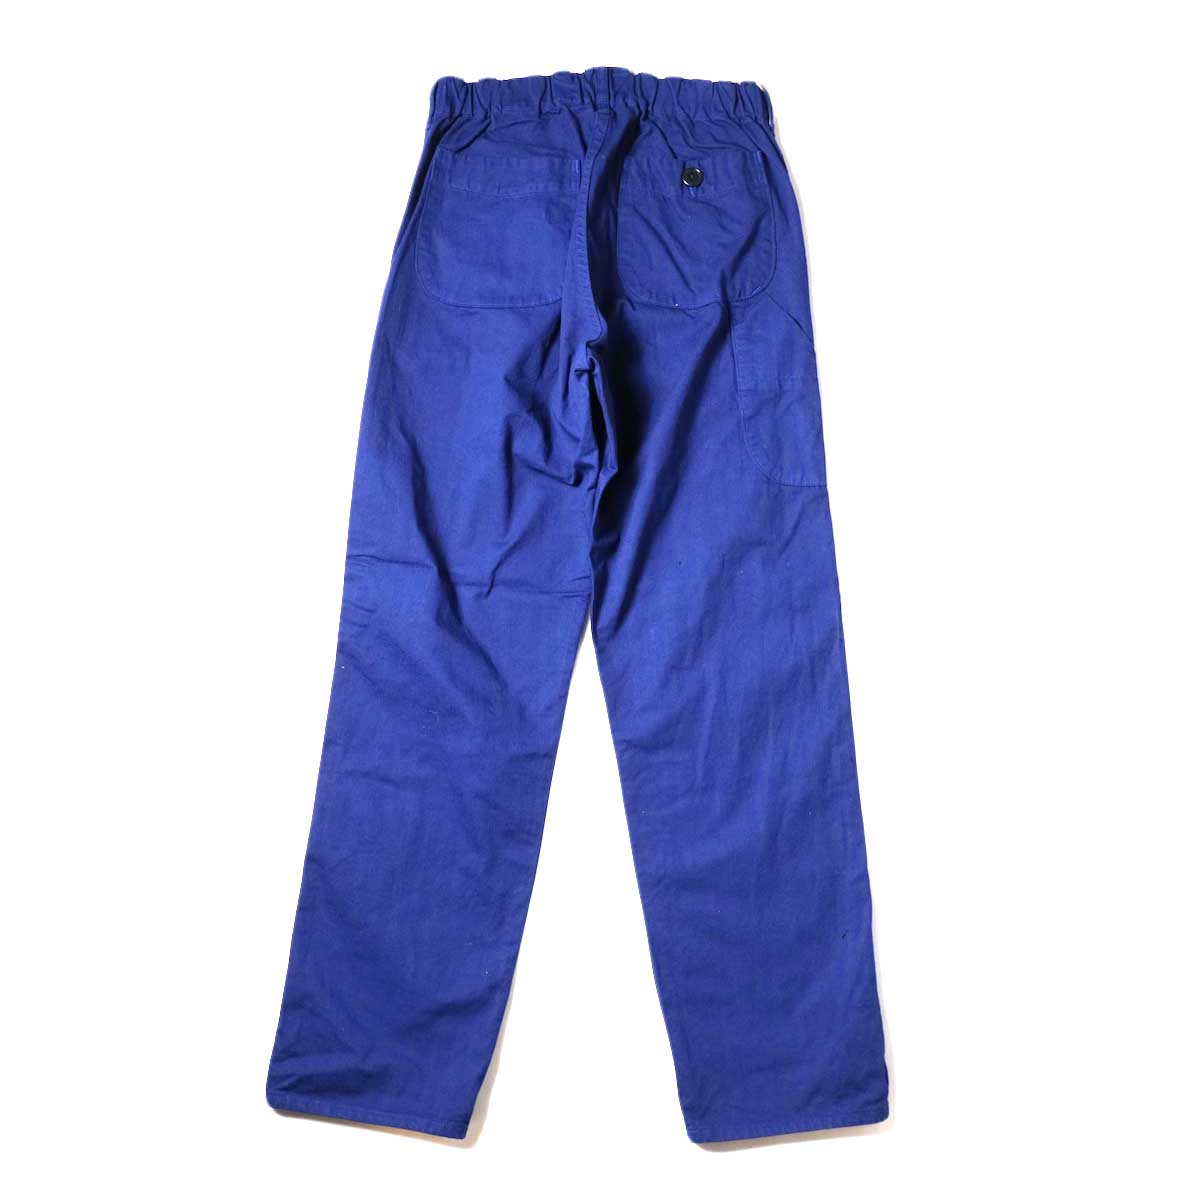 orSlow / French Work Pants (Blue) 背面